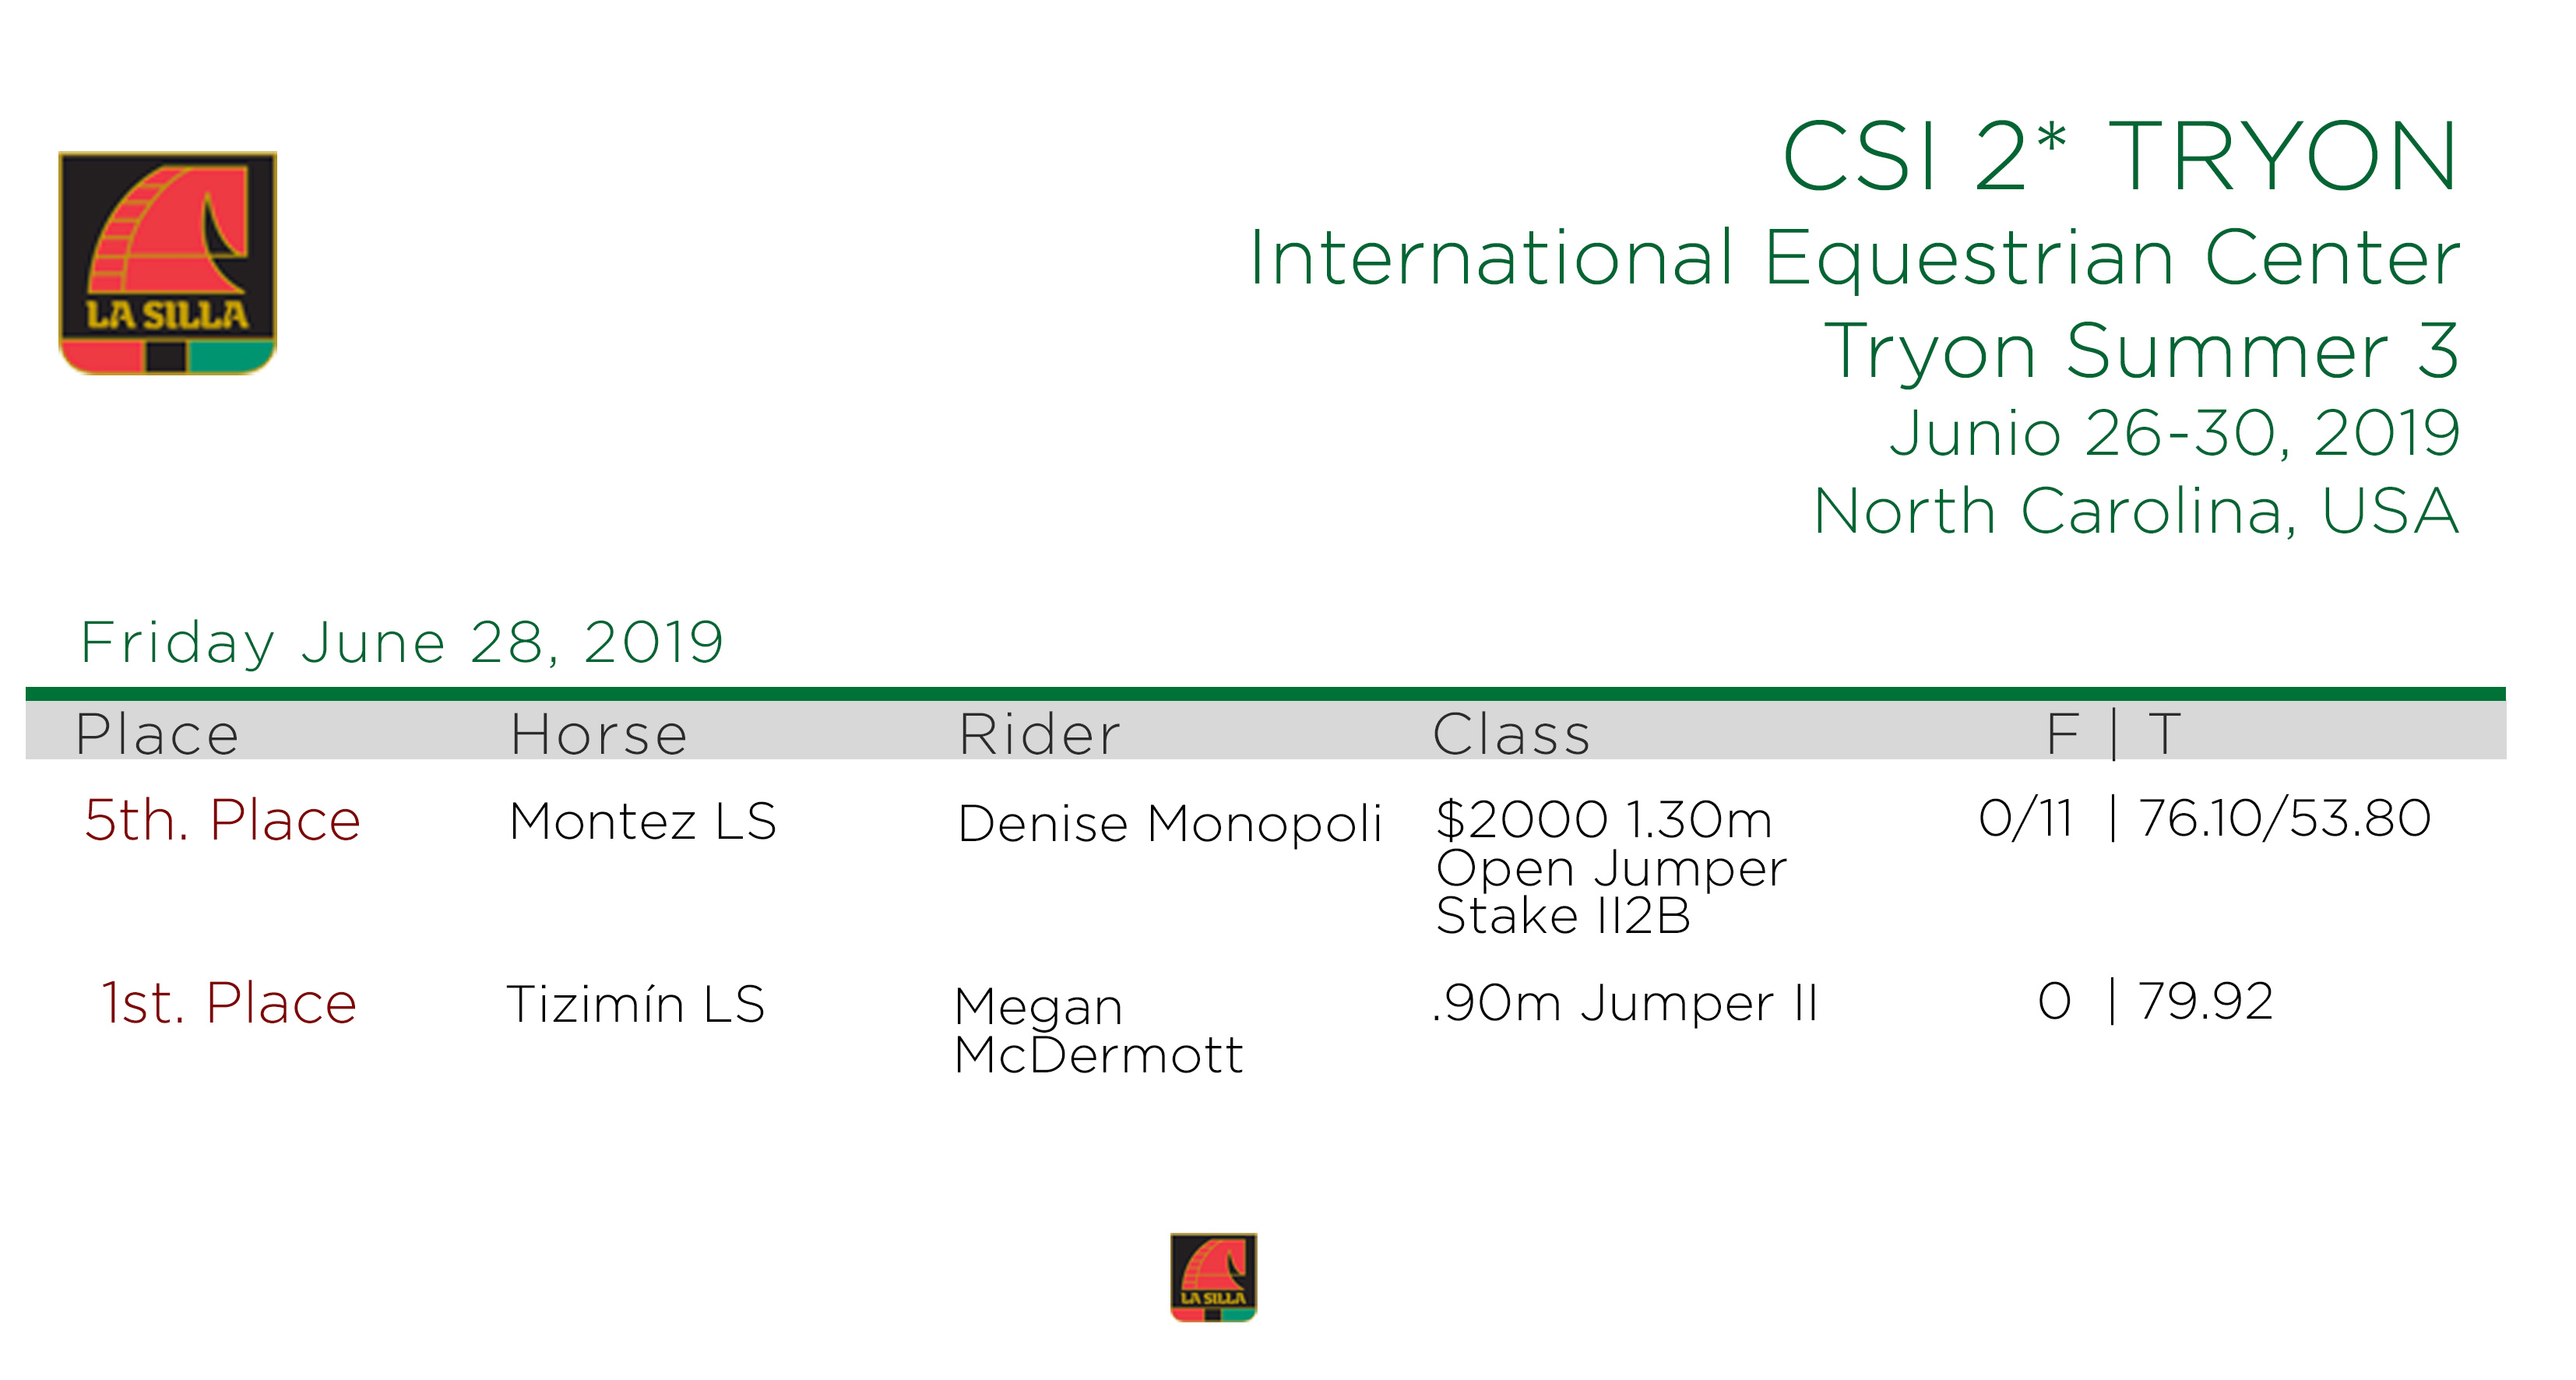 TRYON-IEC-Tryon-Summer-CSI2-Junio-26-30_2019-USA-